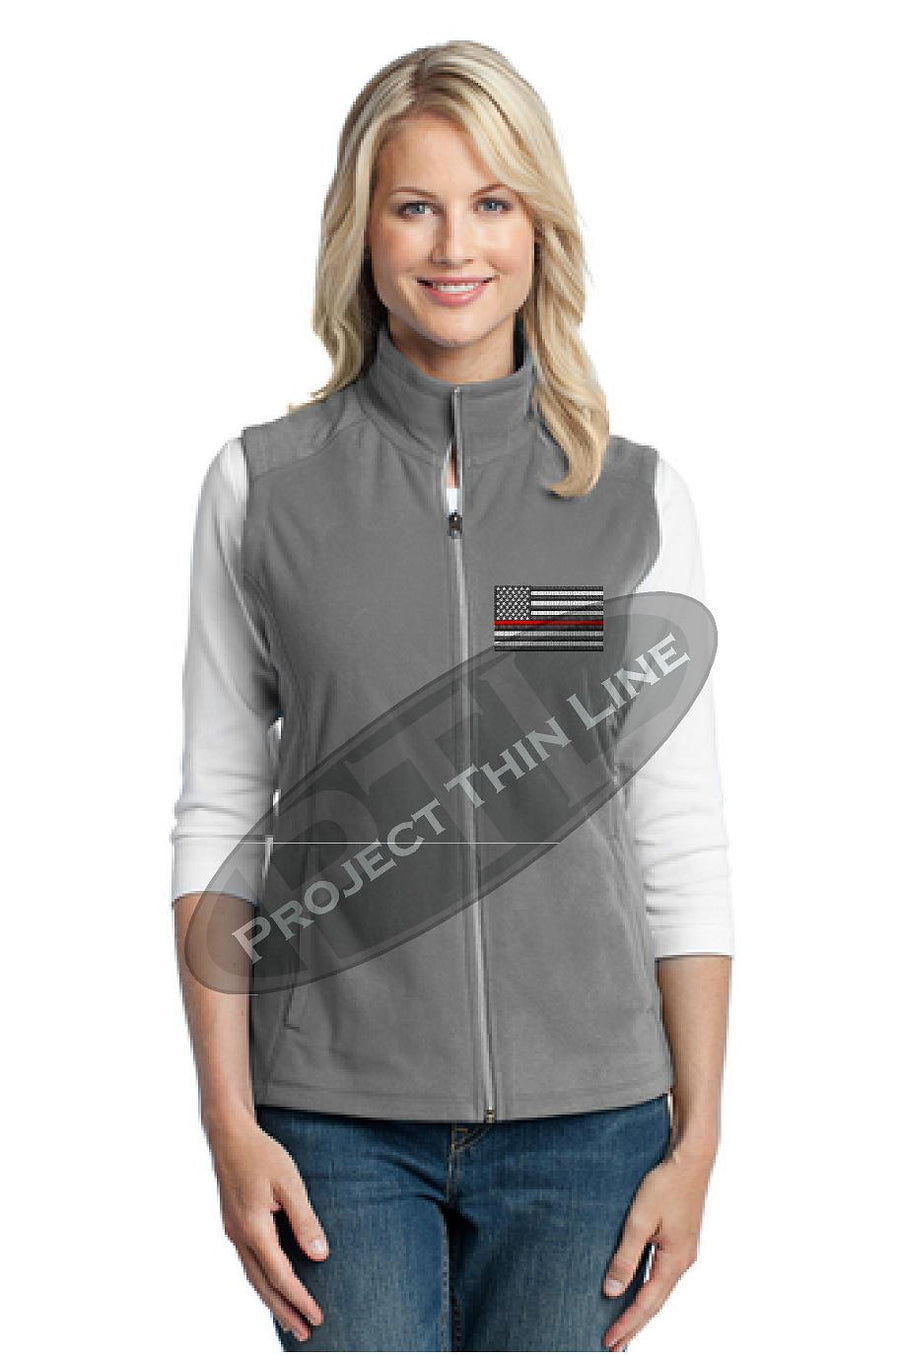 GREY Microfleece Vest - Ladies Thin RED Line American Flag